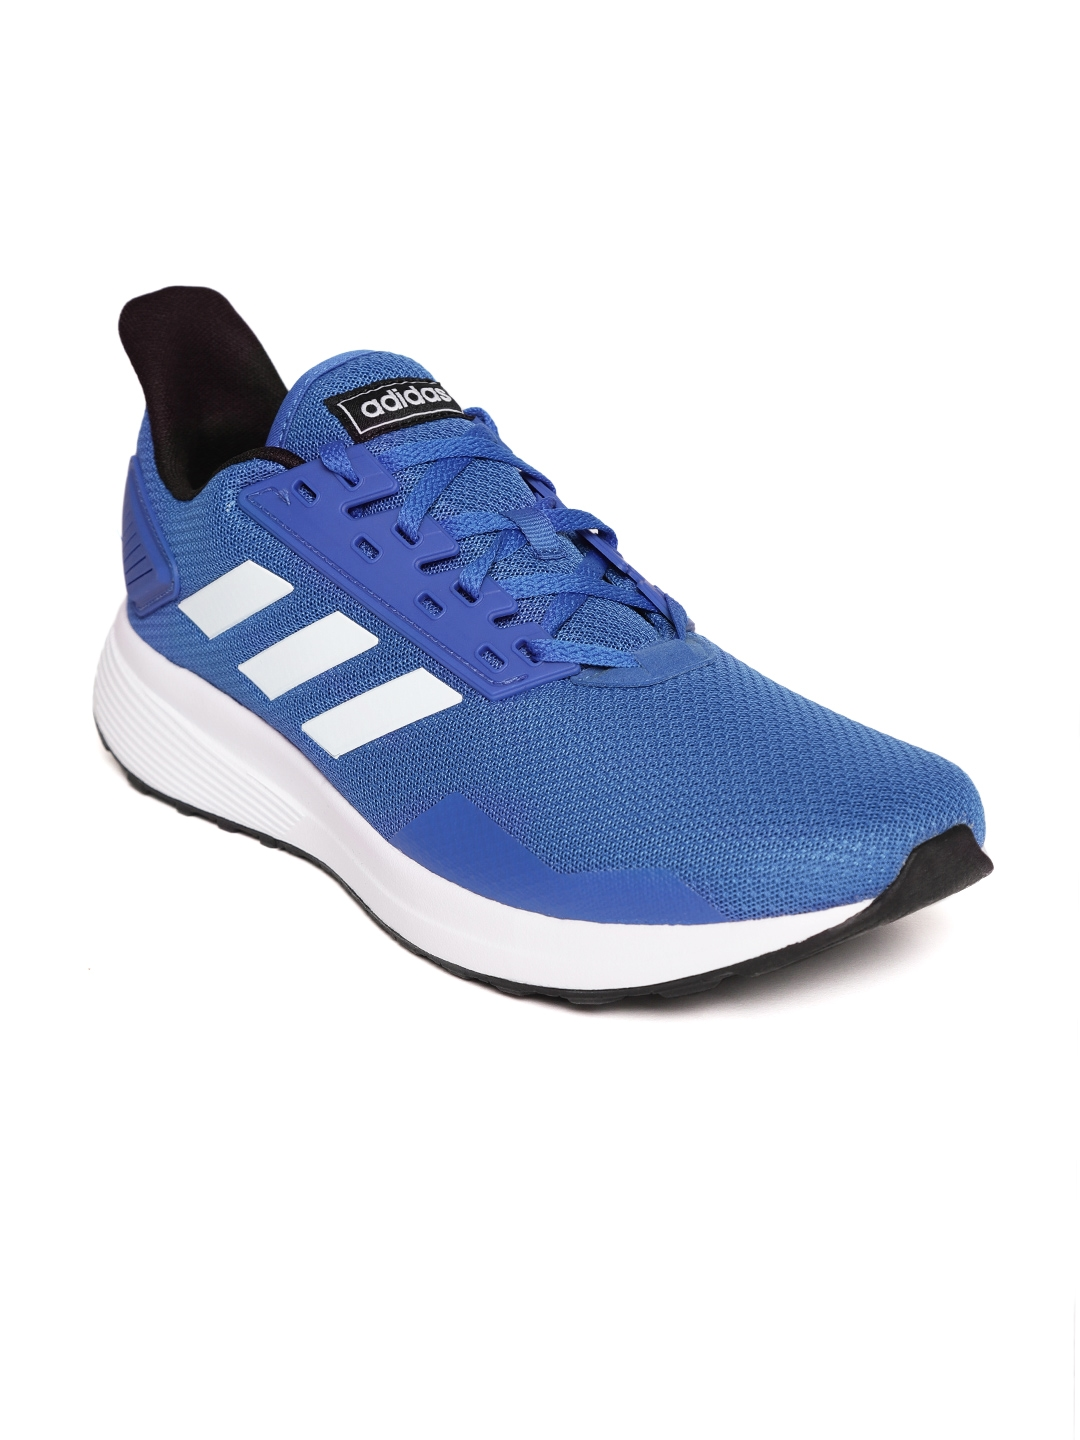 wholesale dealer 03ebf f9e83 Adidas Men Blue Duramo 9 Running Shoes